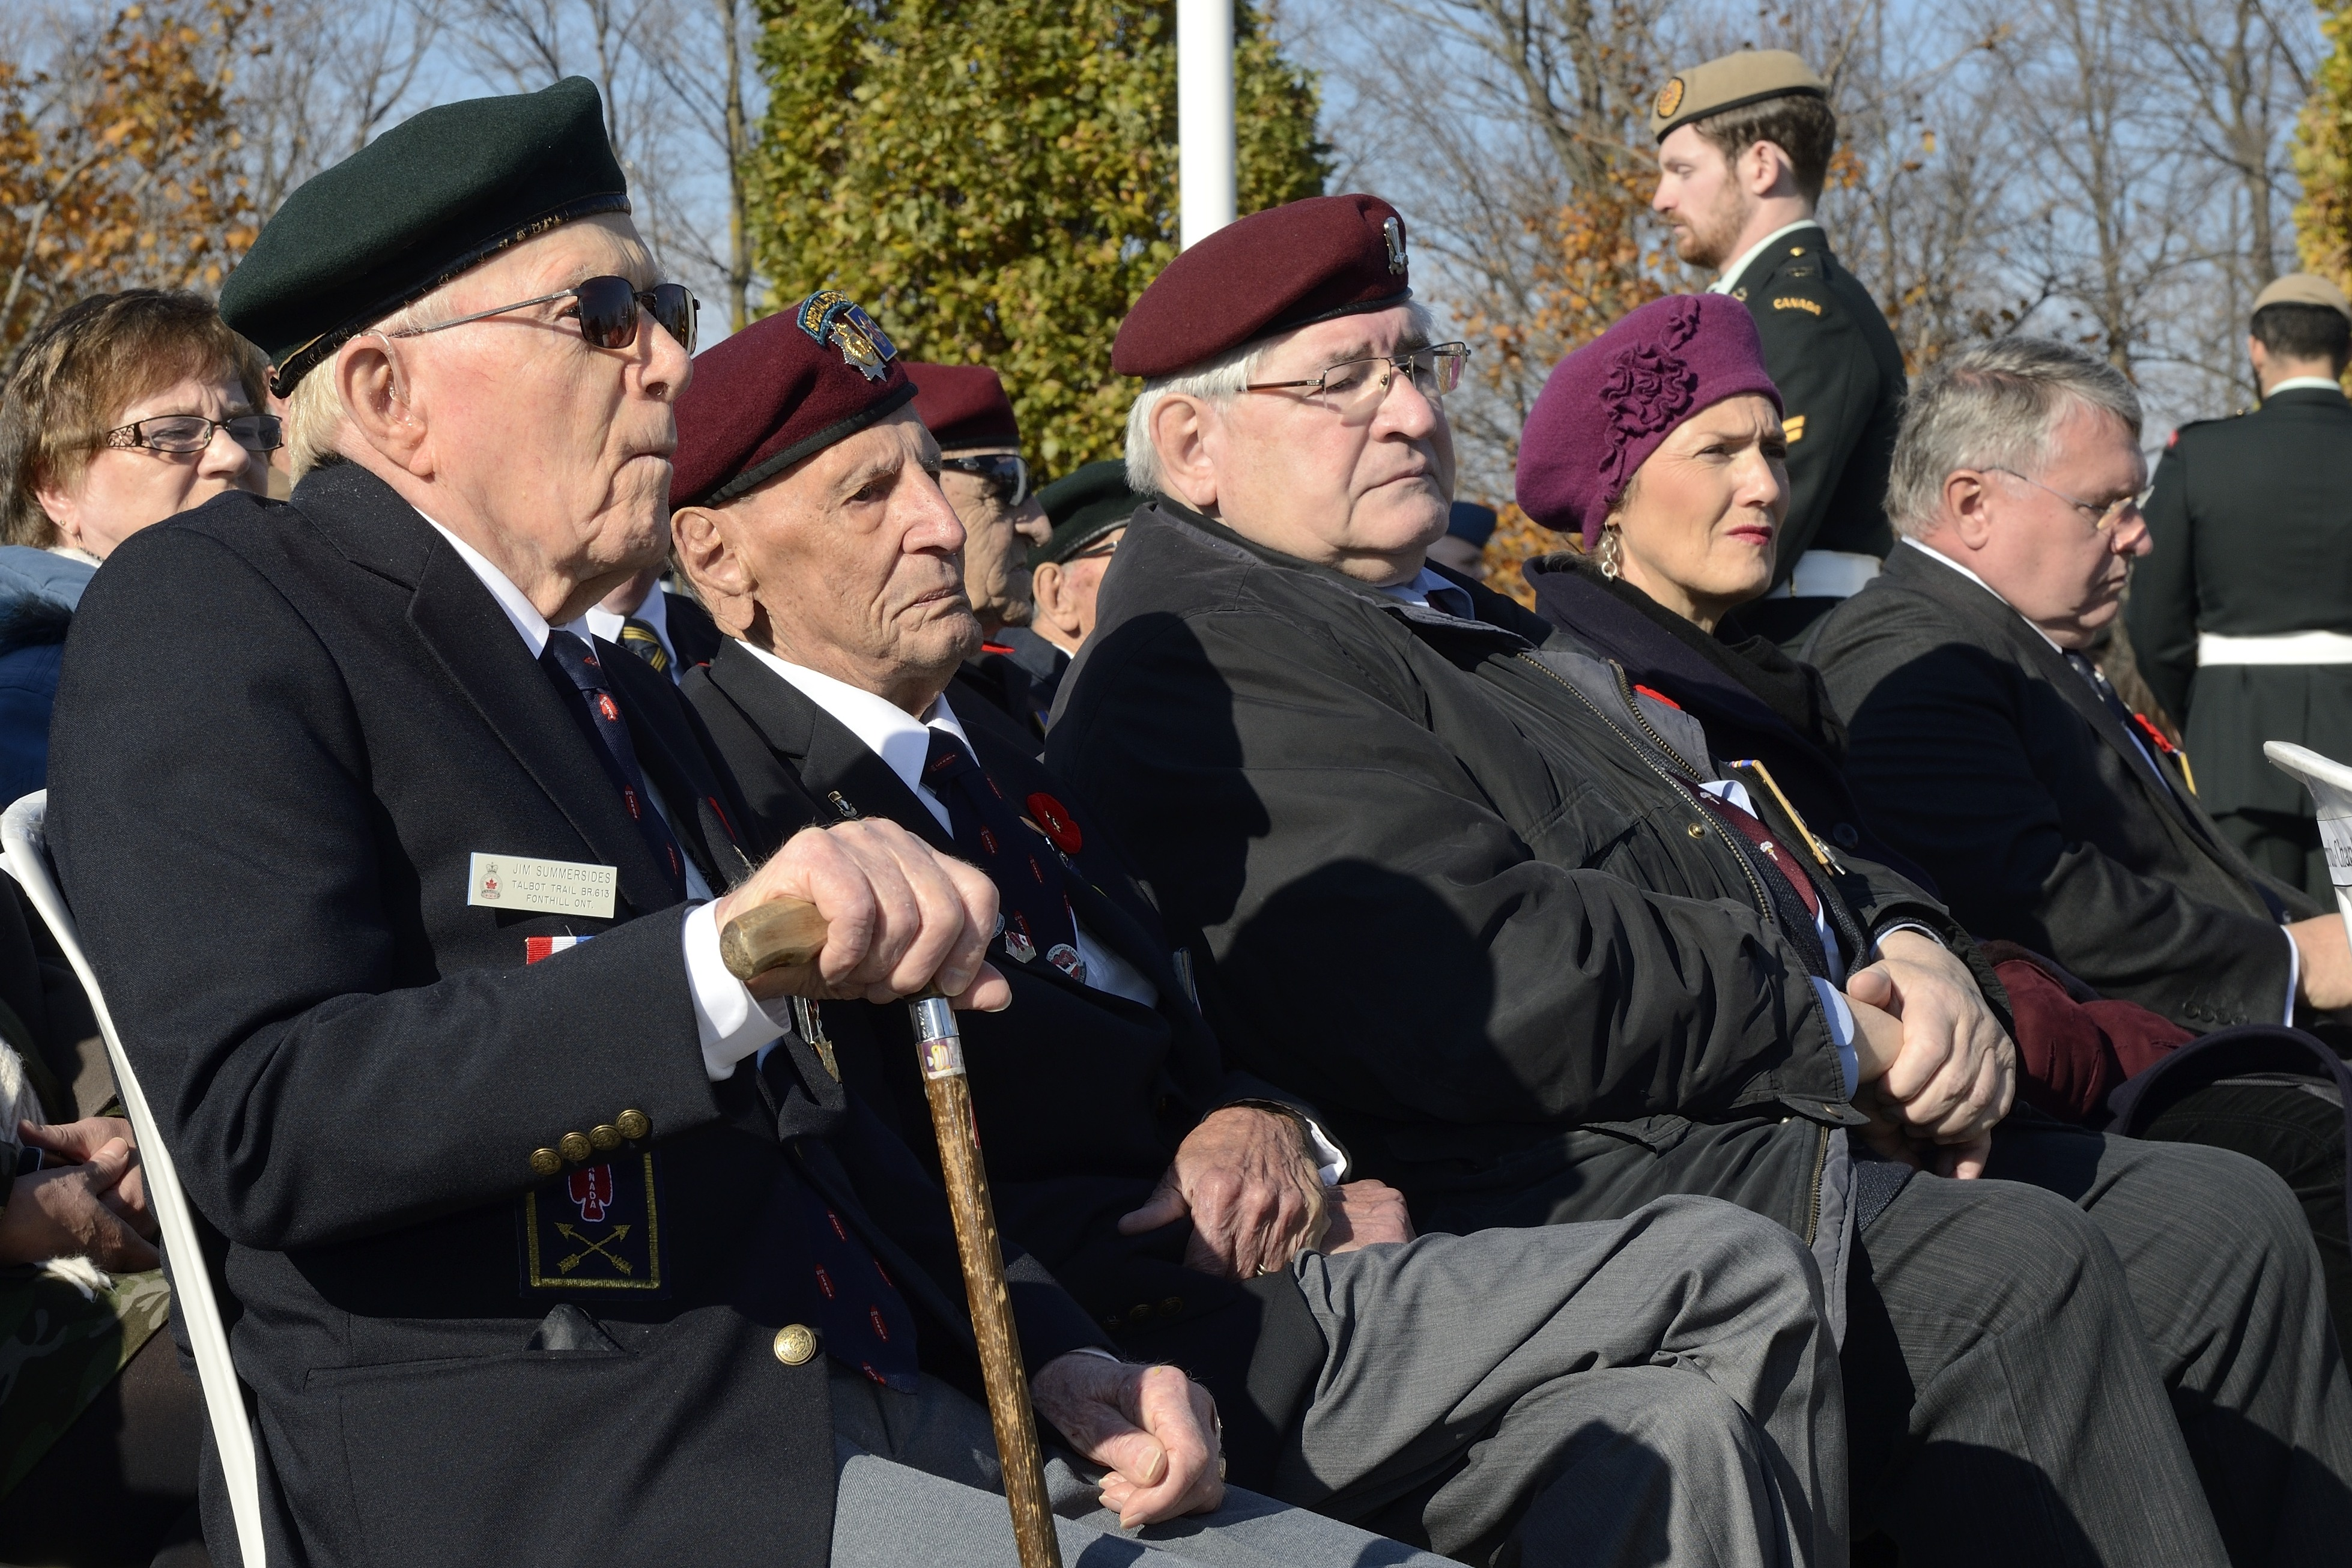 "Mr. Jim Summersides (left), Mr. Ralph Mayville, and Mr. Wil Paquette, former members of the 1st Special Service Force, ""Devil's Brigade"" at the Remembrance Day Ceremony on November 11, 2014 at the Beechwood Military Cemetery in Ottawa, Ontario. PHOTO: Corporal Lisa Fenton"